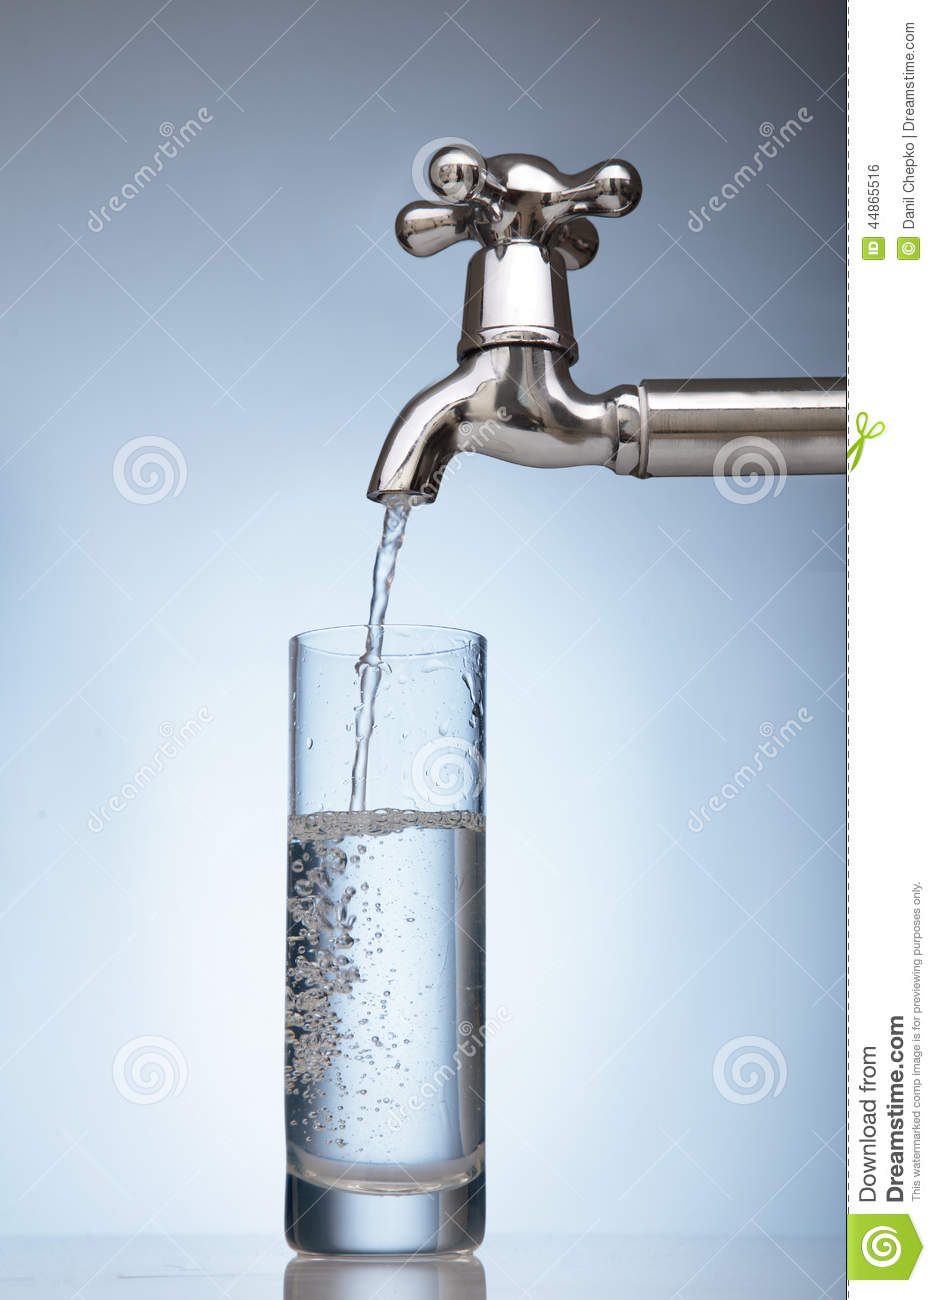 Water Is Poured Into A Glass From The Tap Stock Photo